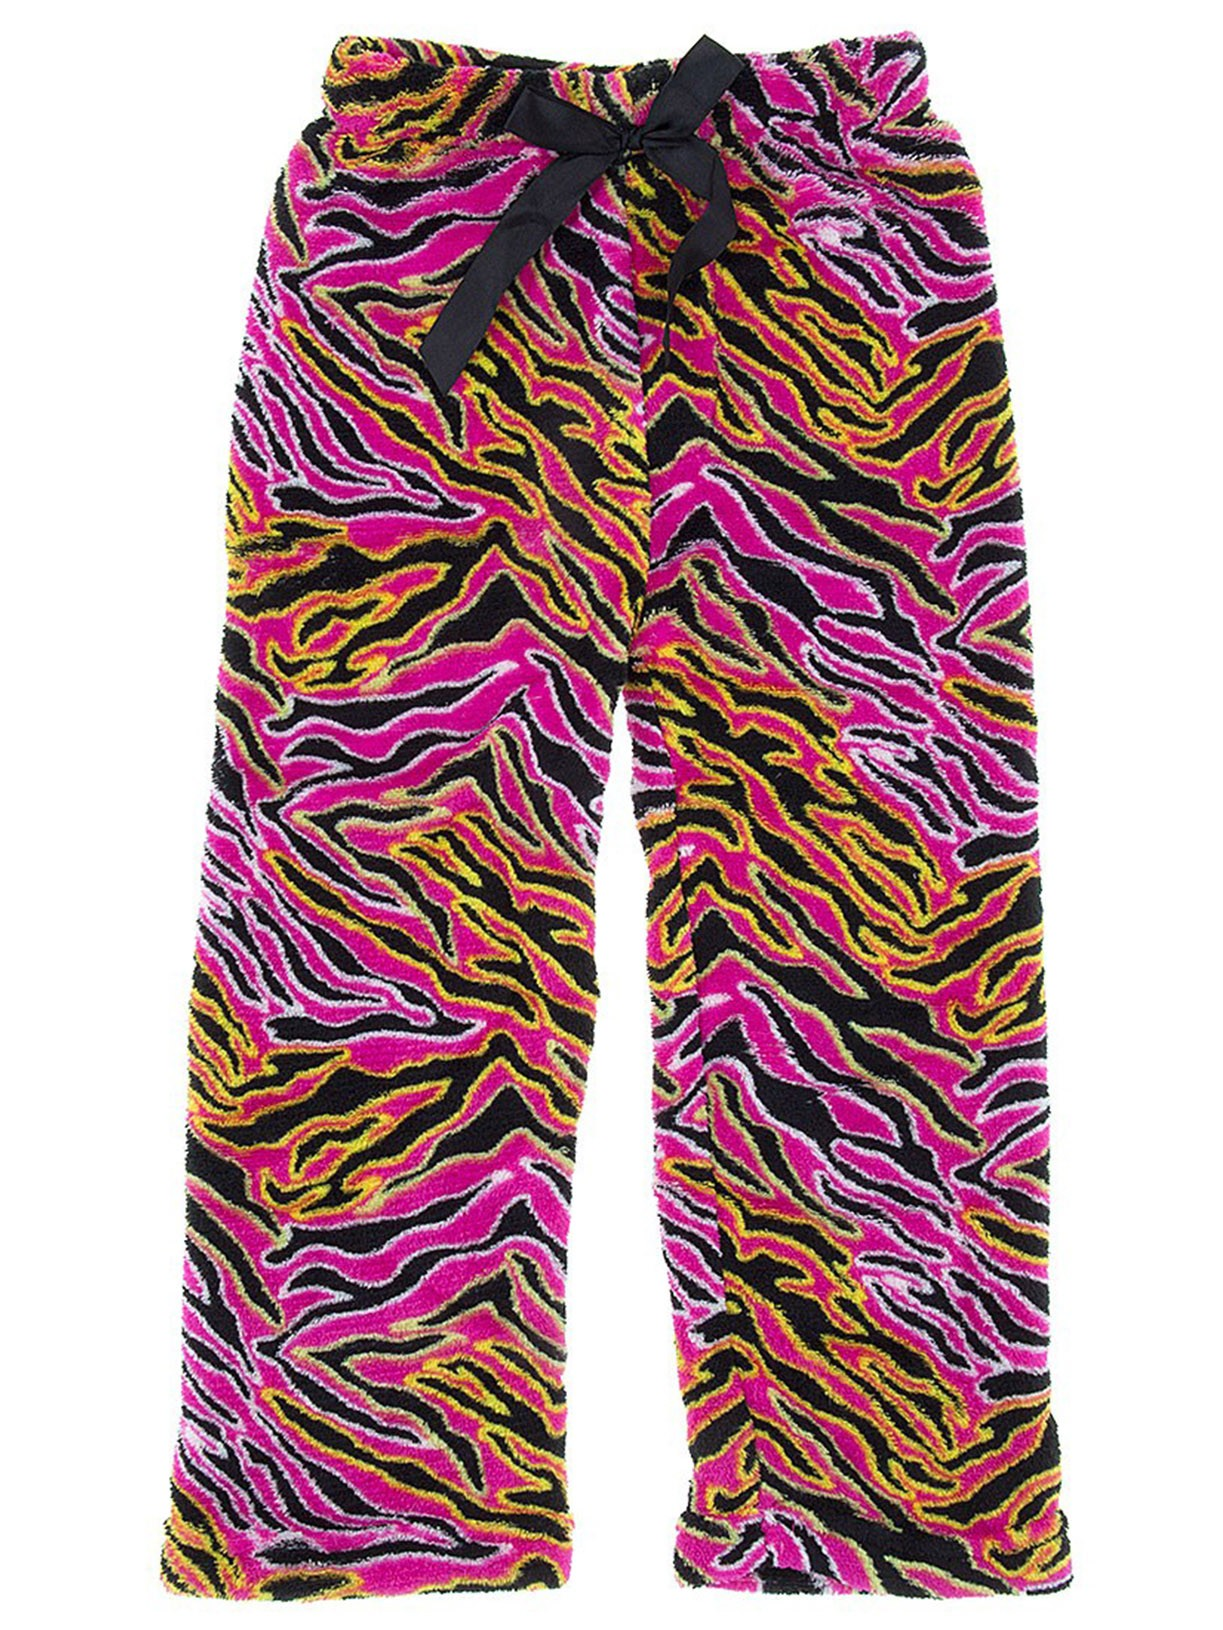 Sweet Sassy Girls Pink Zebra Fleece Pajama Pants